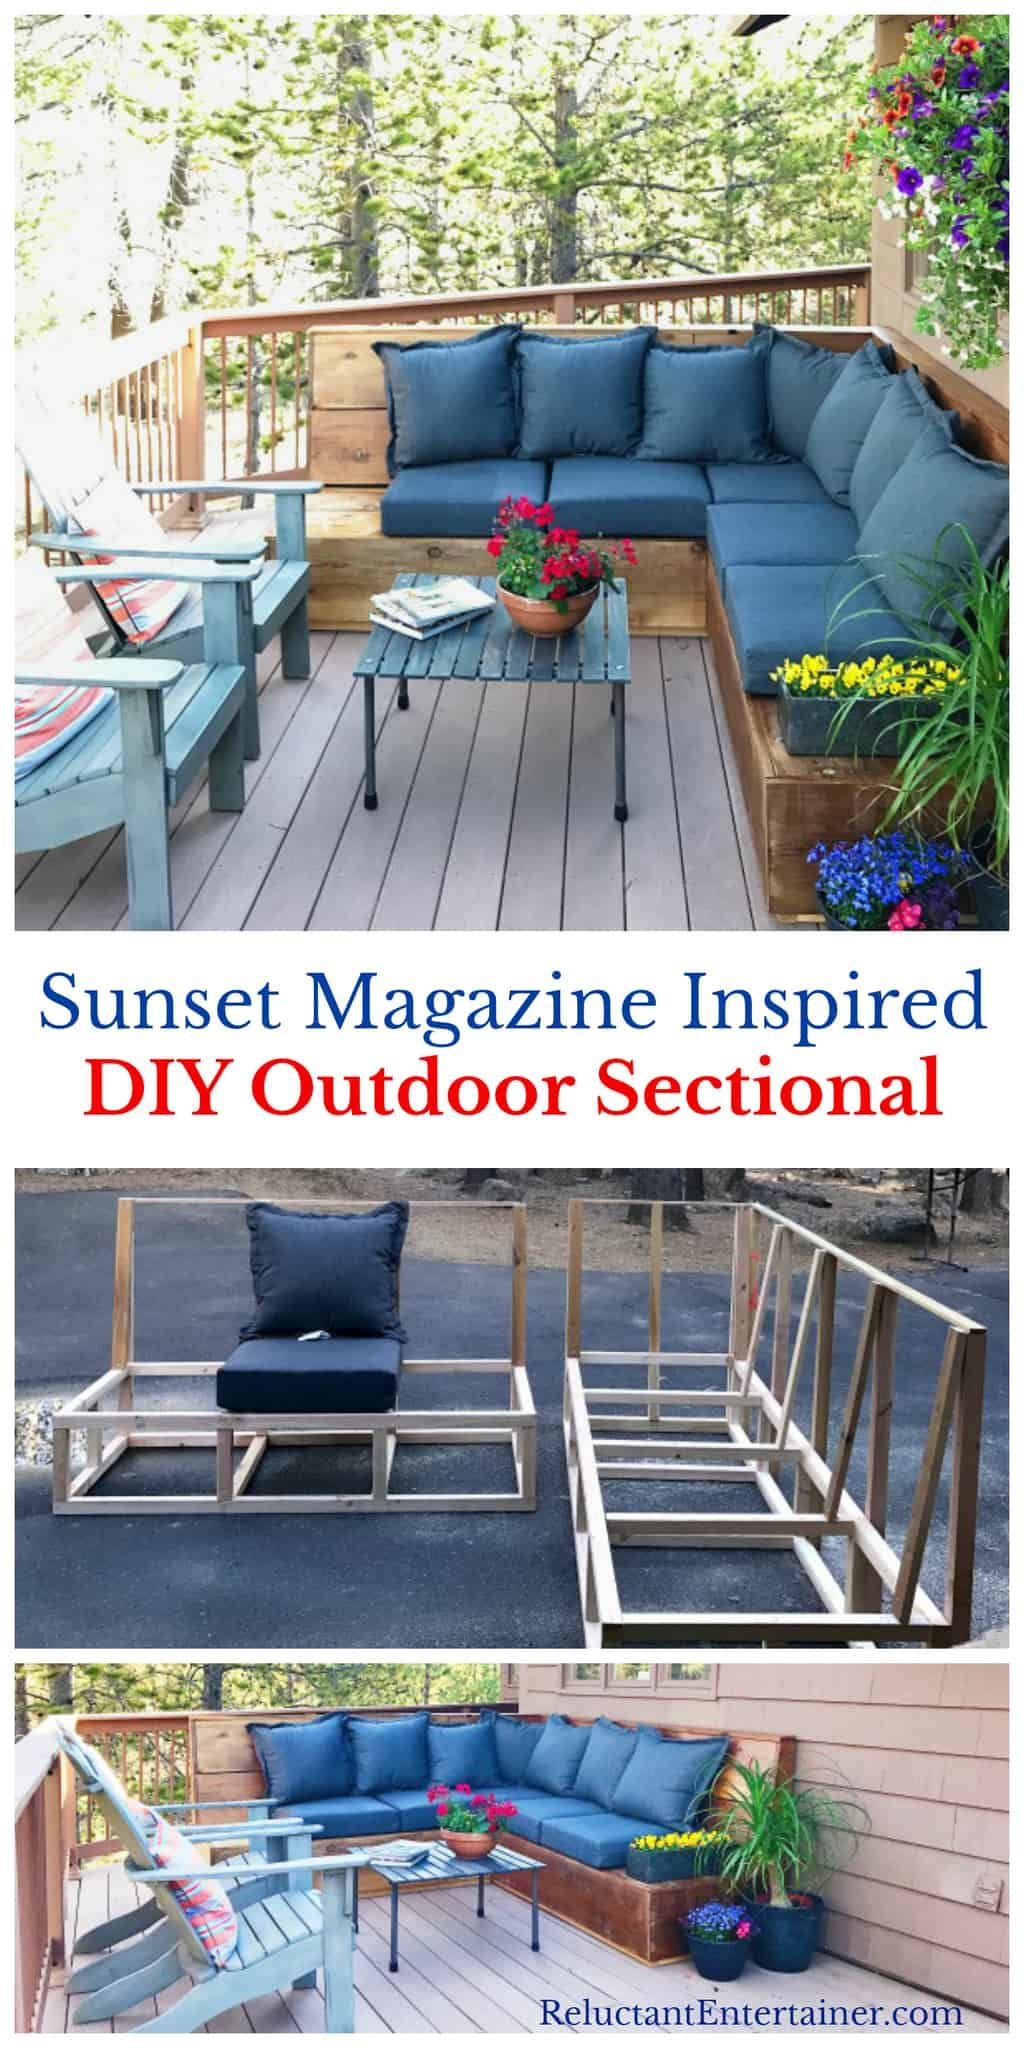 Sunset Magazine Inspired Diy Outdoor Sectional L Shaped Couch Is Made Of Cedar Boards With Comfortable Thick Cushions